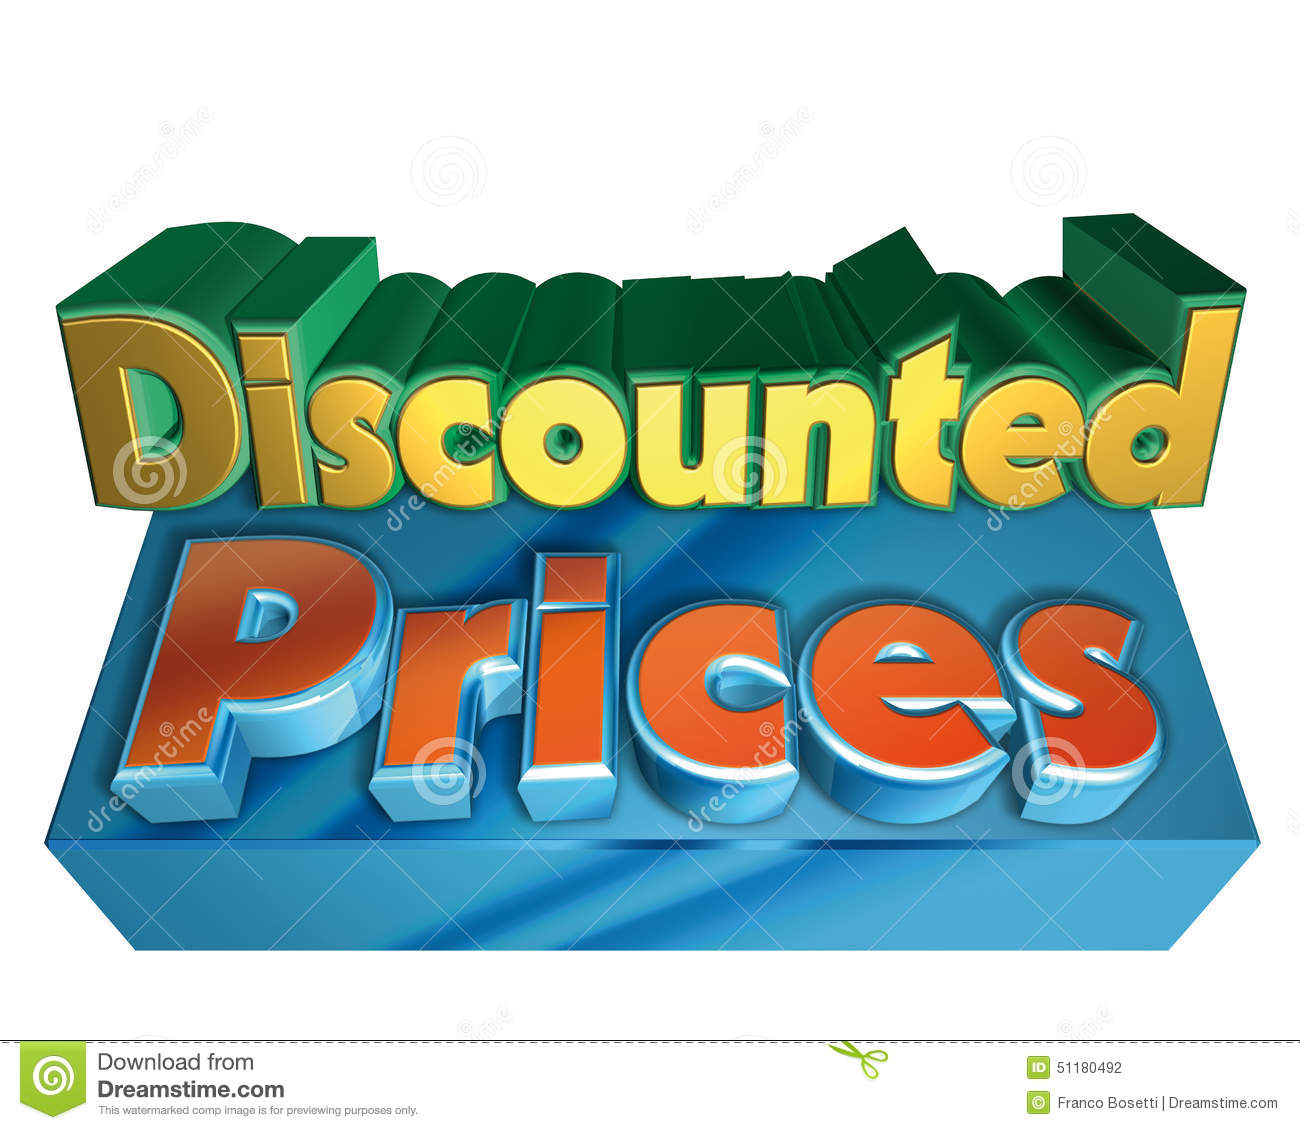 discounted prices stock illustration image 51180492